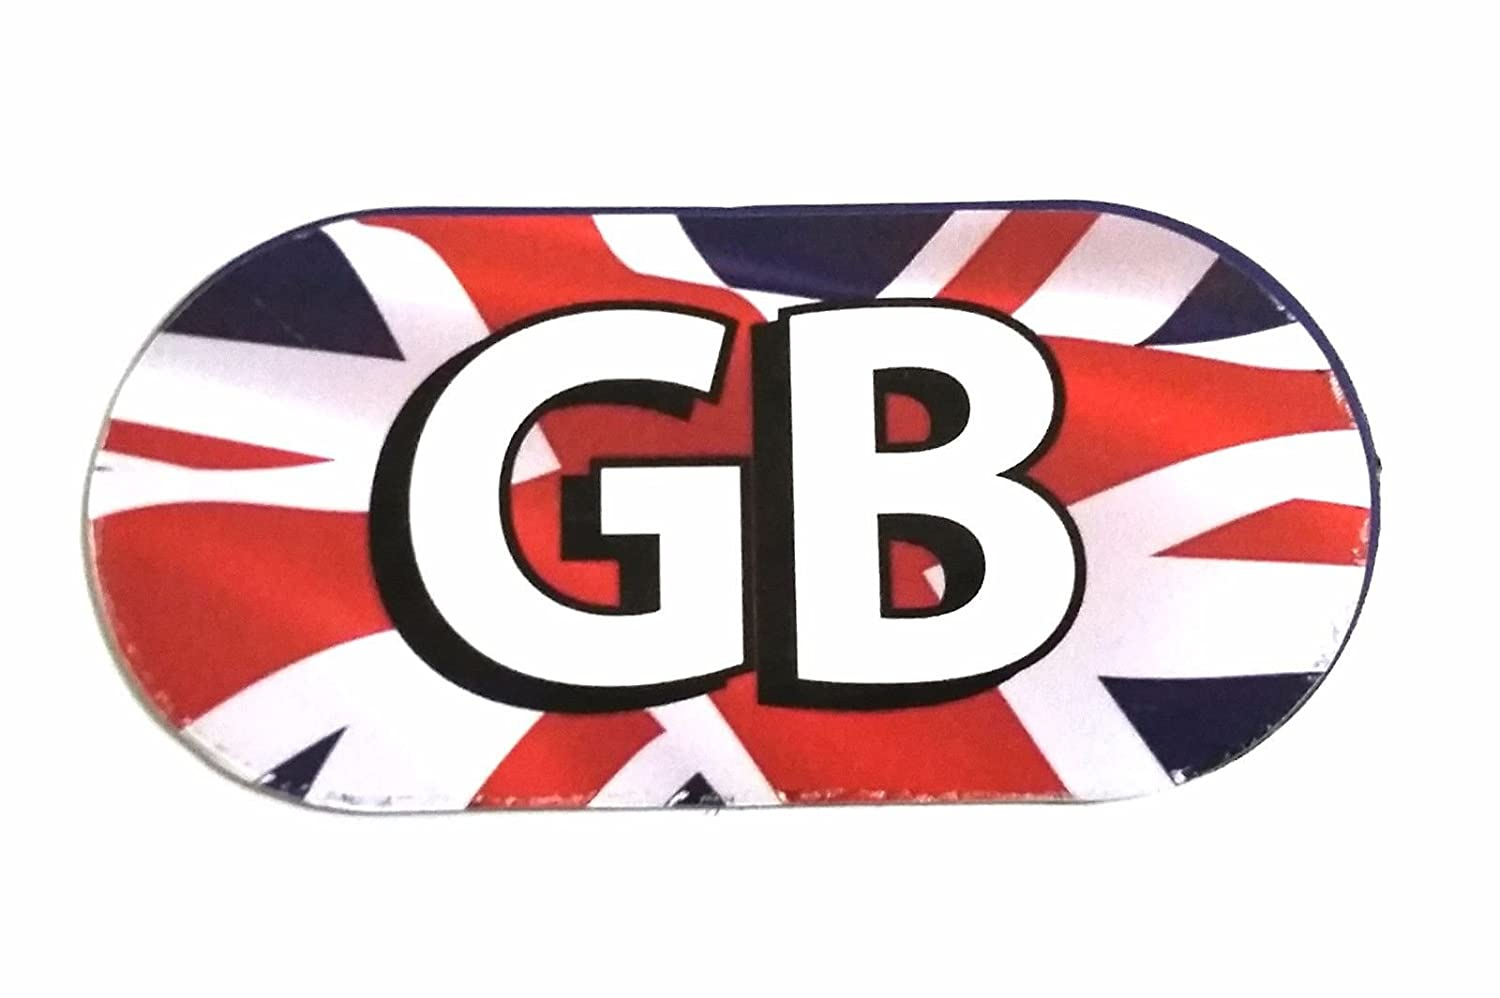 Union Jack Magnetic GB Vehicle Plate Travel Driving Abroad Legally Required Family Motoring & Leisure